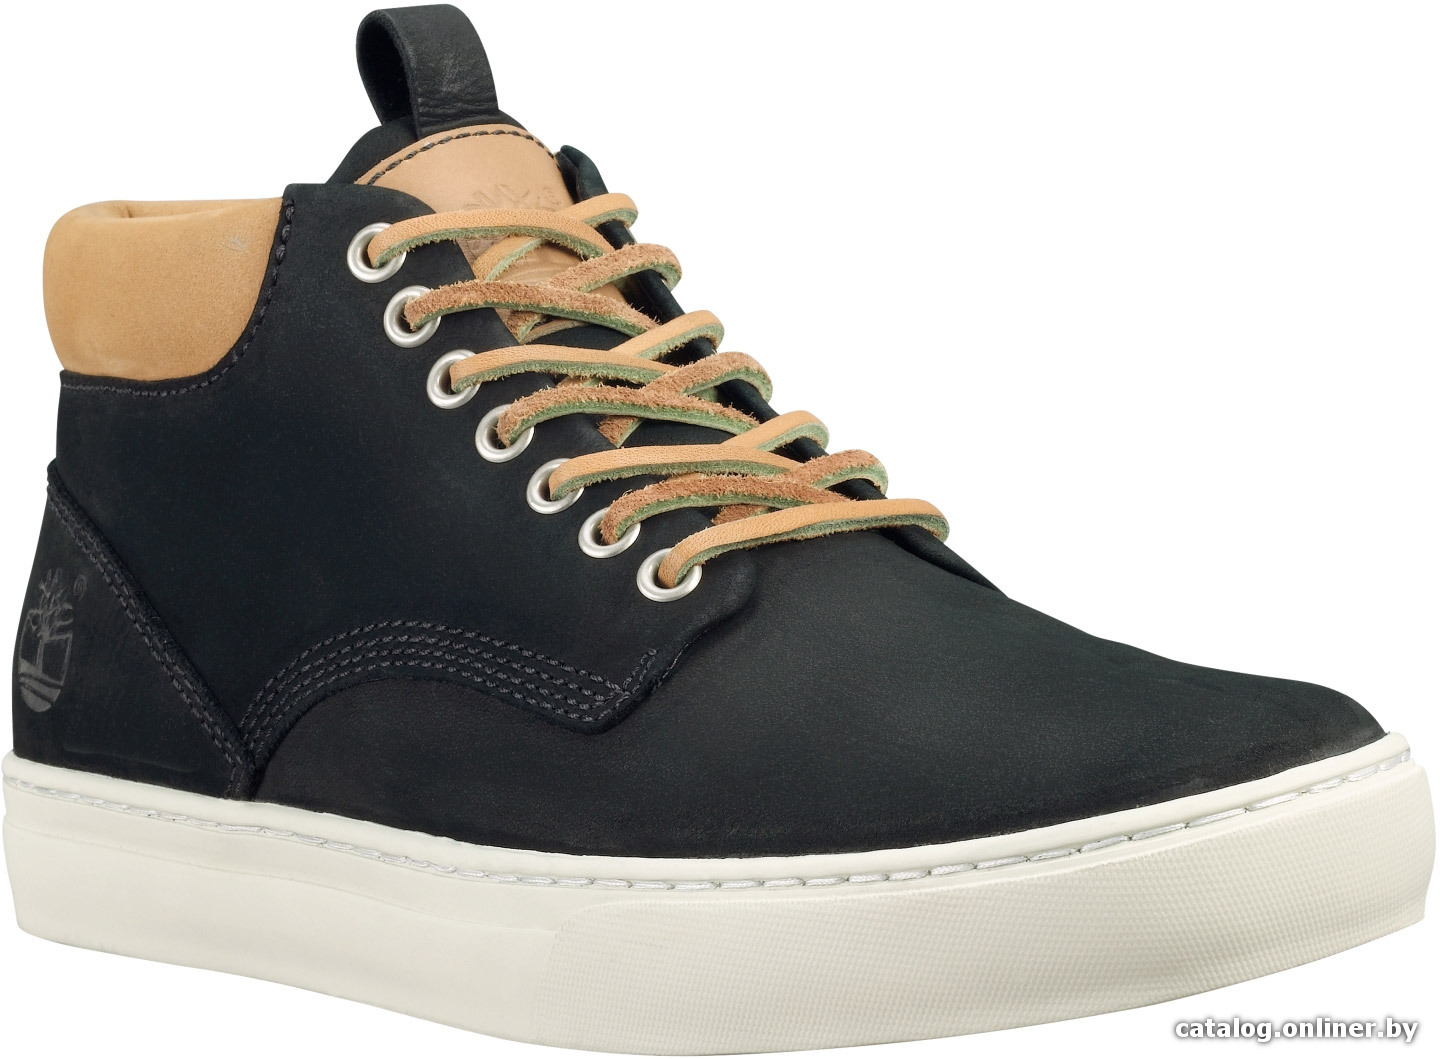 Timberland Earthkeepers Adventure Cupsole Chukka Shoes черный (3301A ... fbb1b640f58